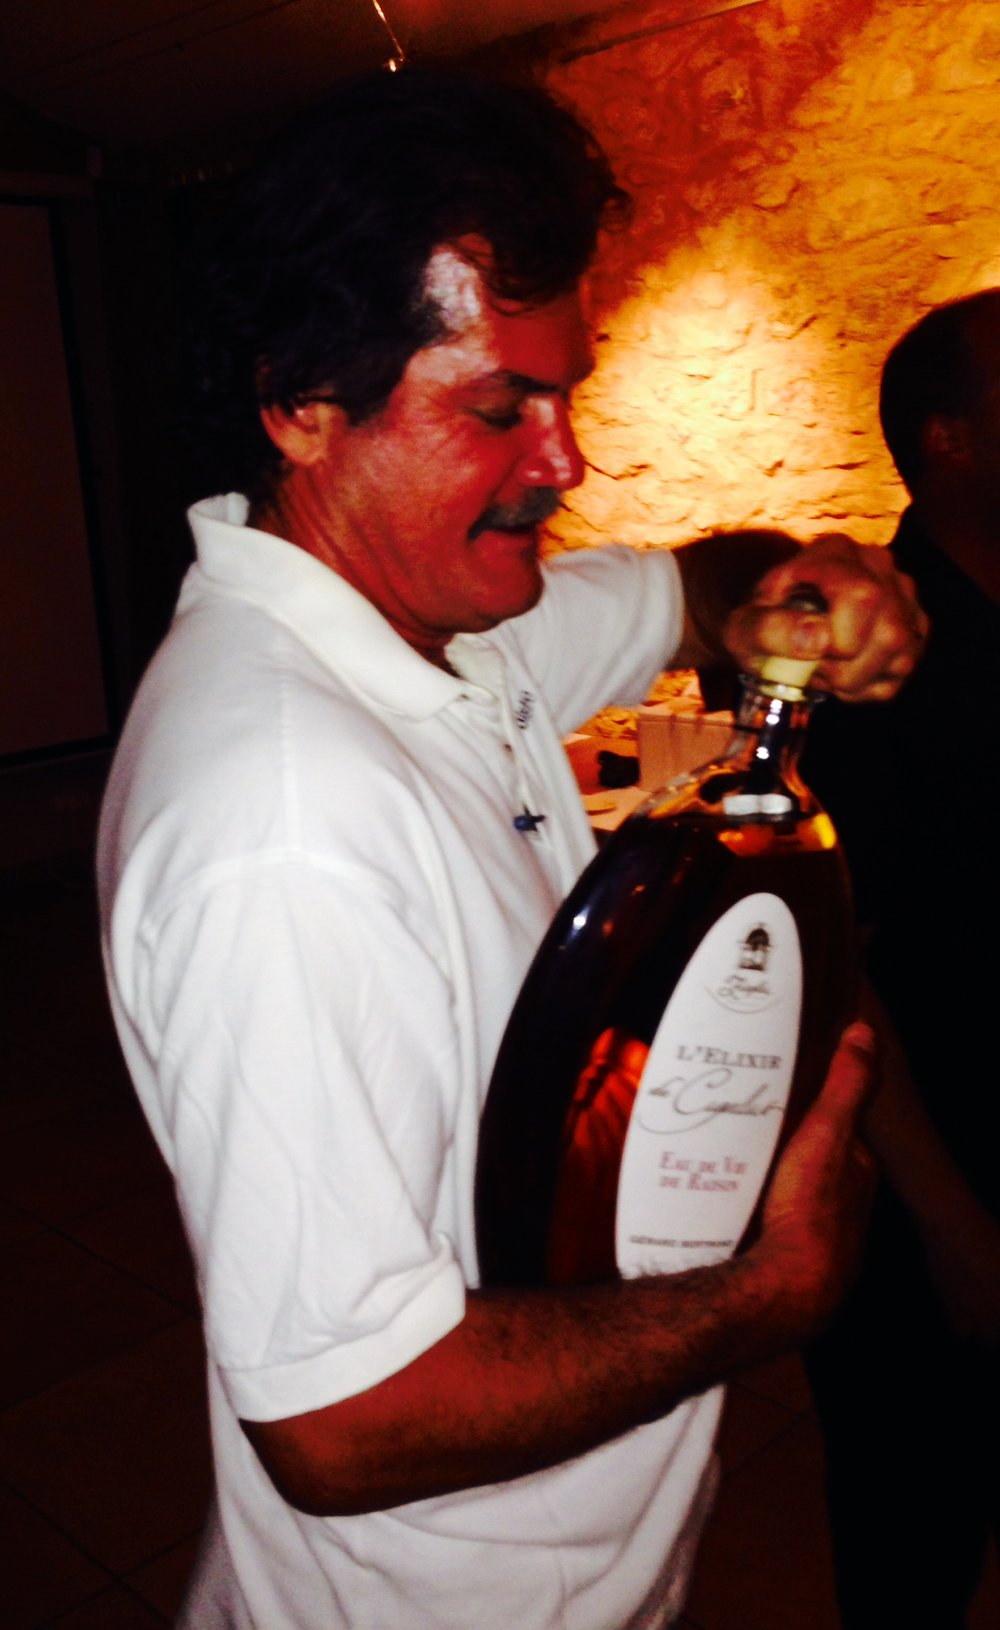 Popping a crystal 3 liter bottle of L'Elixer de Cigalus (86 proof) for a finale nightcap